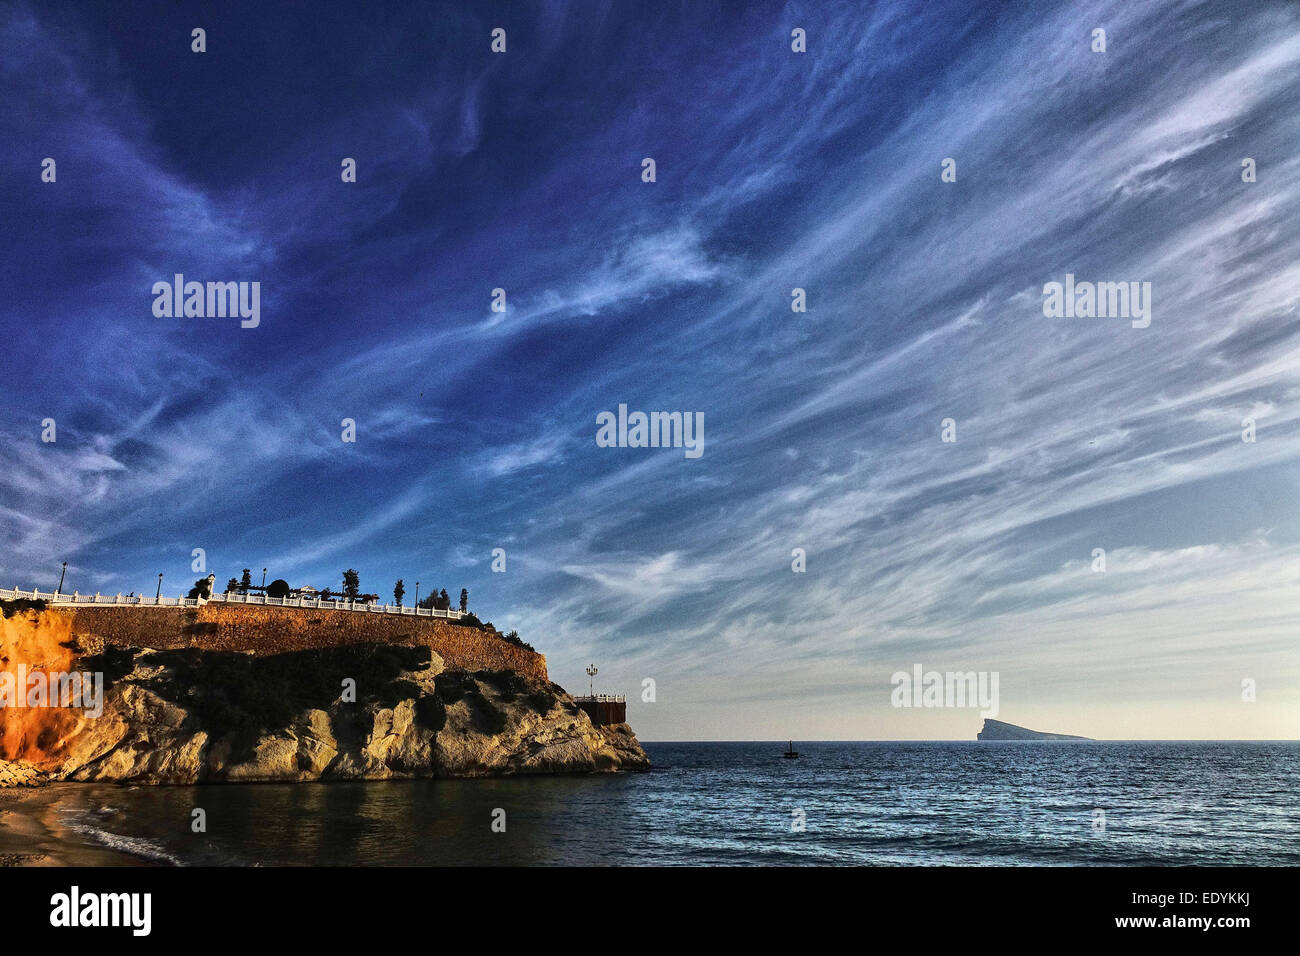 Benidorm promontory from beach with vivid blue sky, wispy  clouds, sea and Peacock Island, Spain - Stock Image